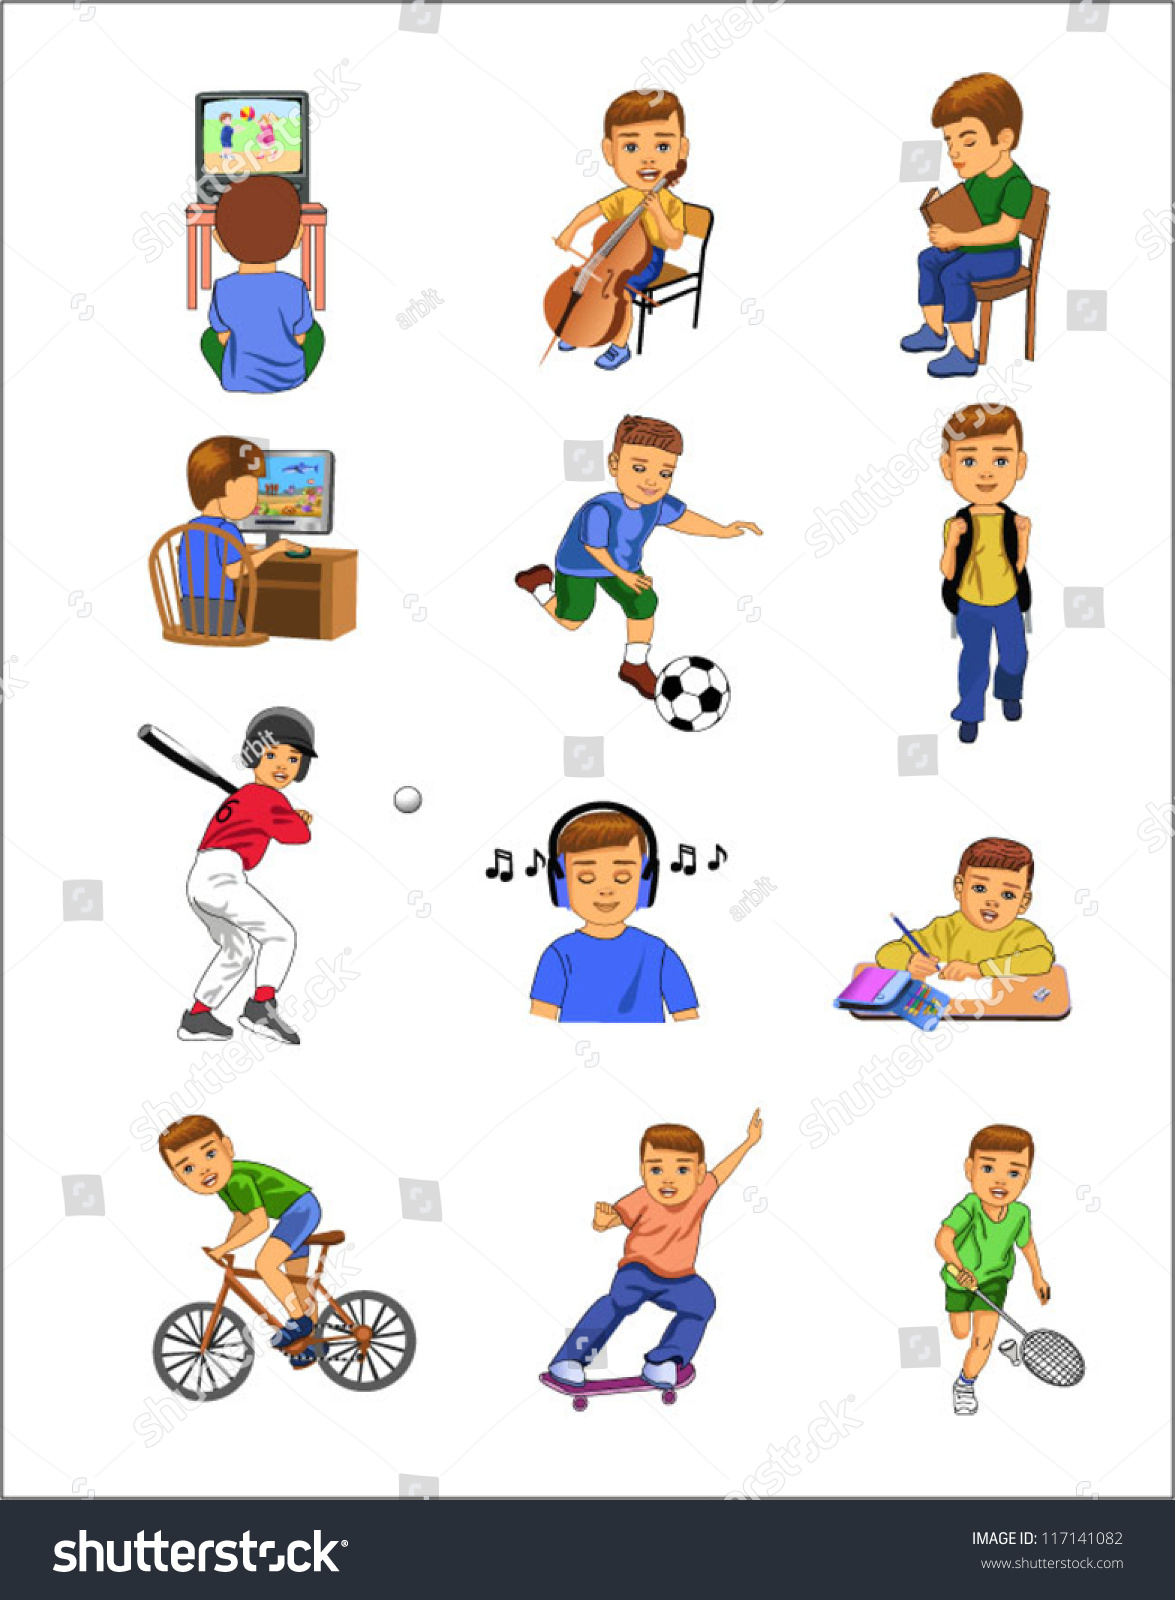 Pecs Printable Communication Pictures In